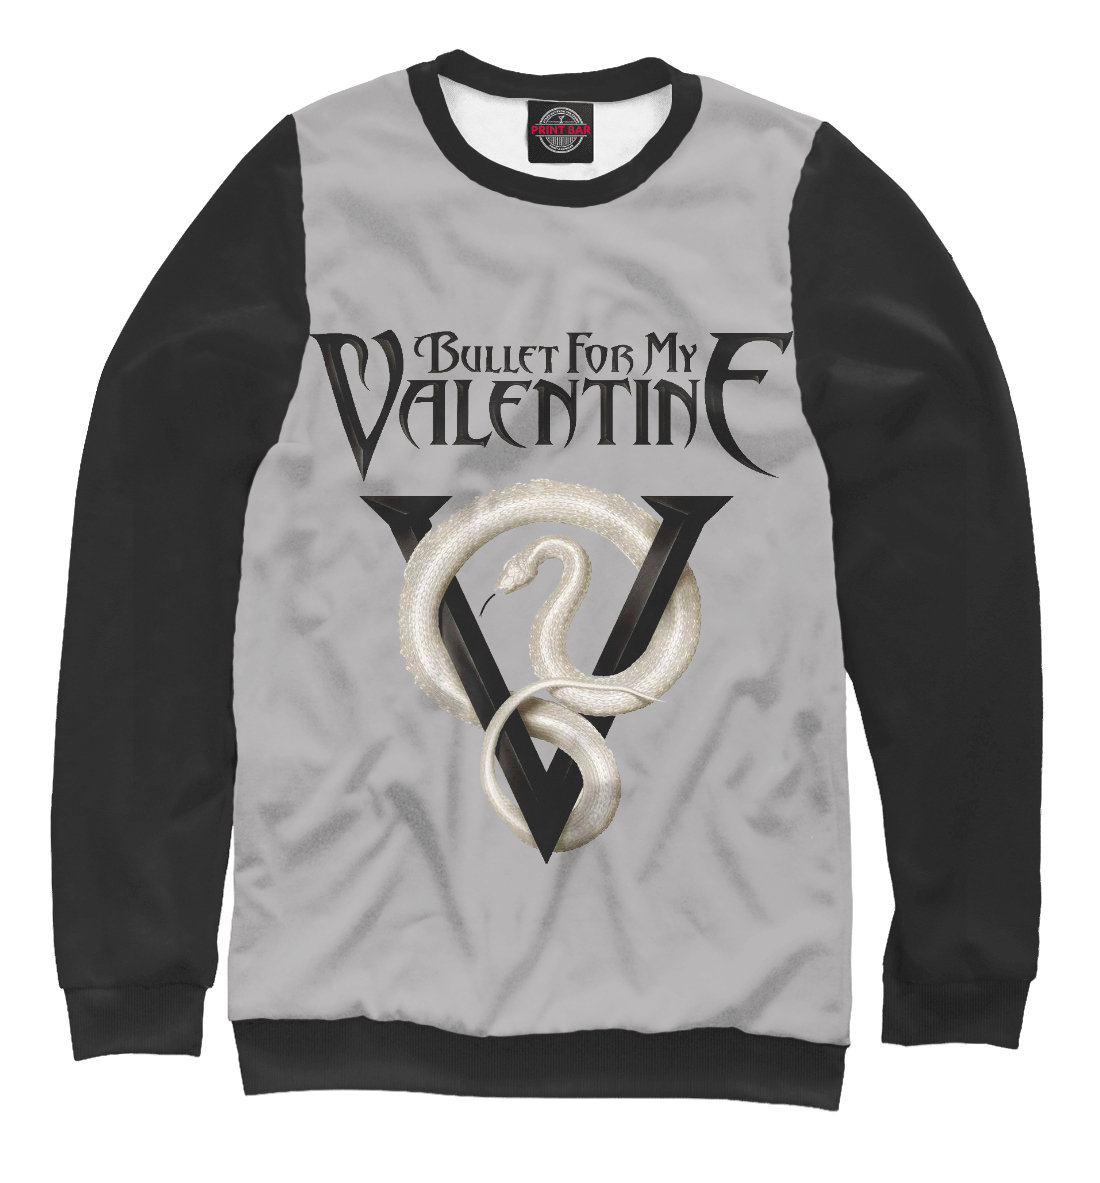 Купить Bullet for My Valentine Venom, Printbar, Свитшоты, BMV-399029-swi-1